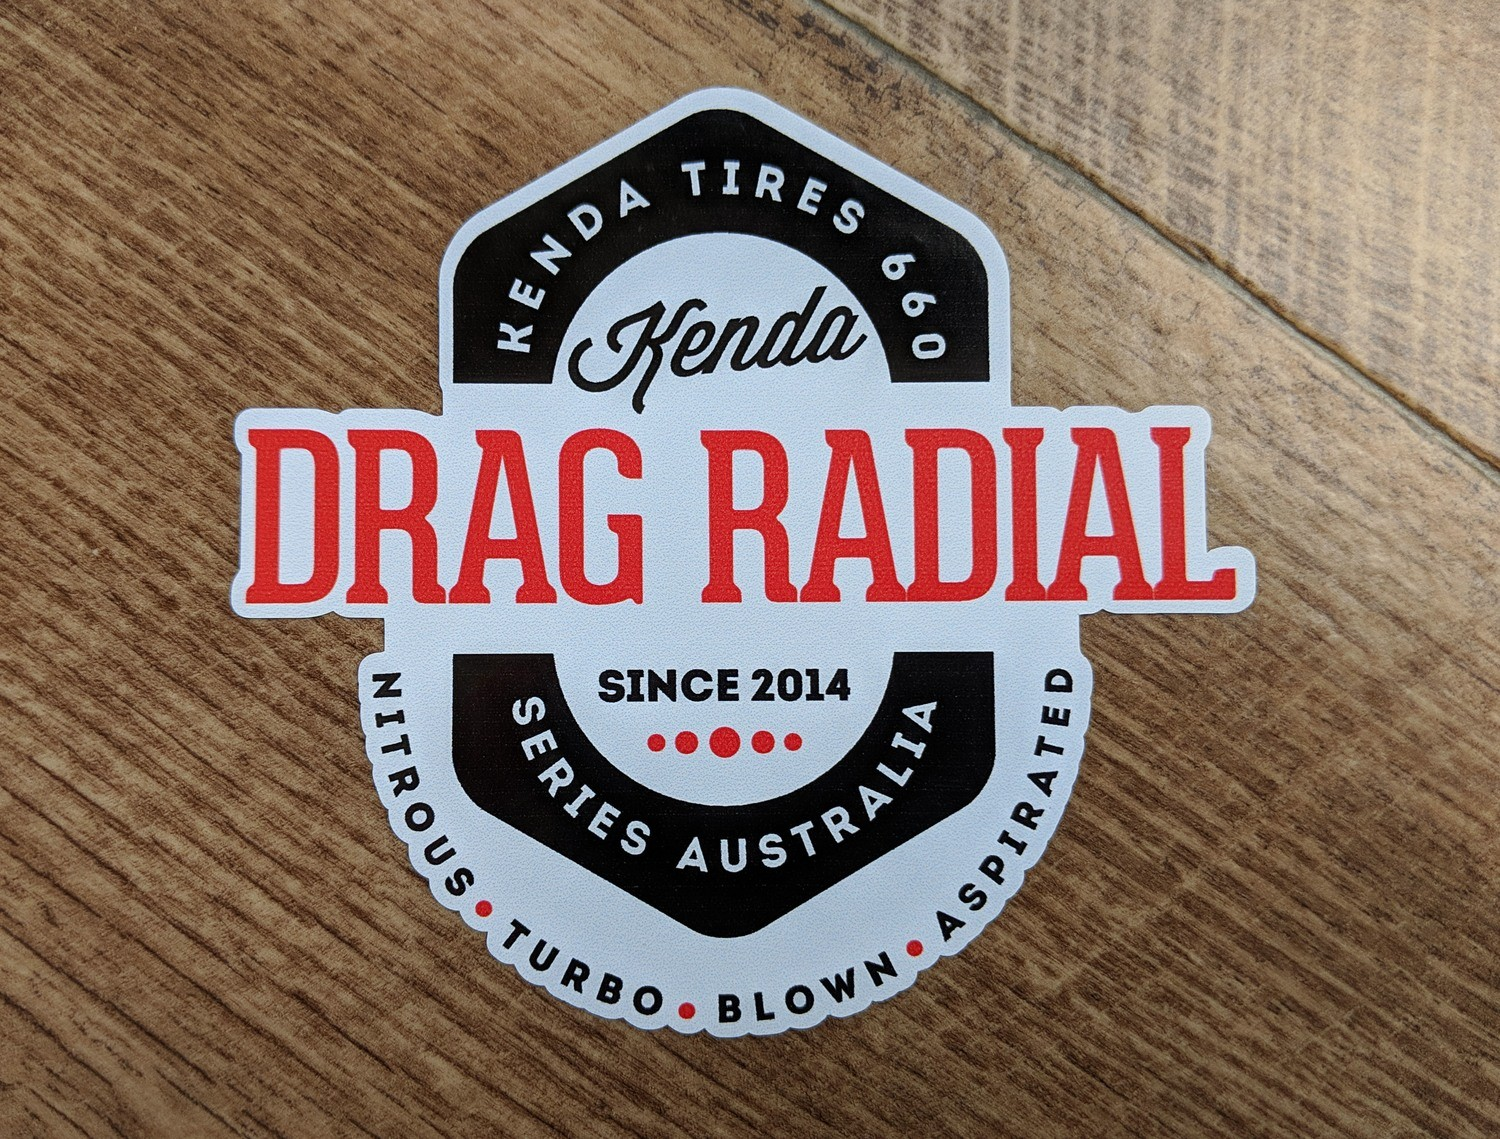 Kenda Drag Radial Badge Sticker